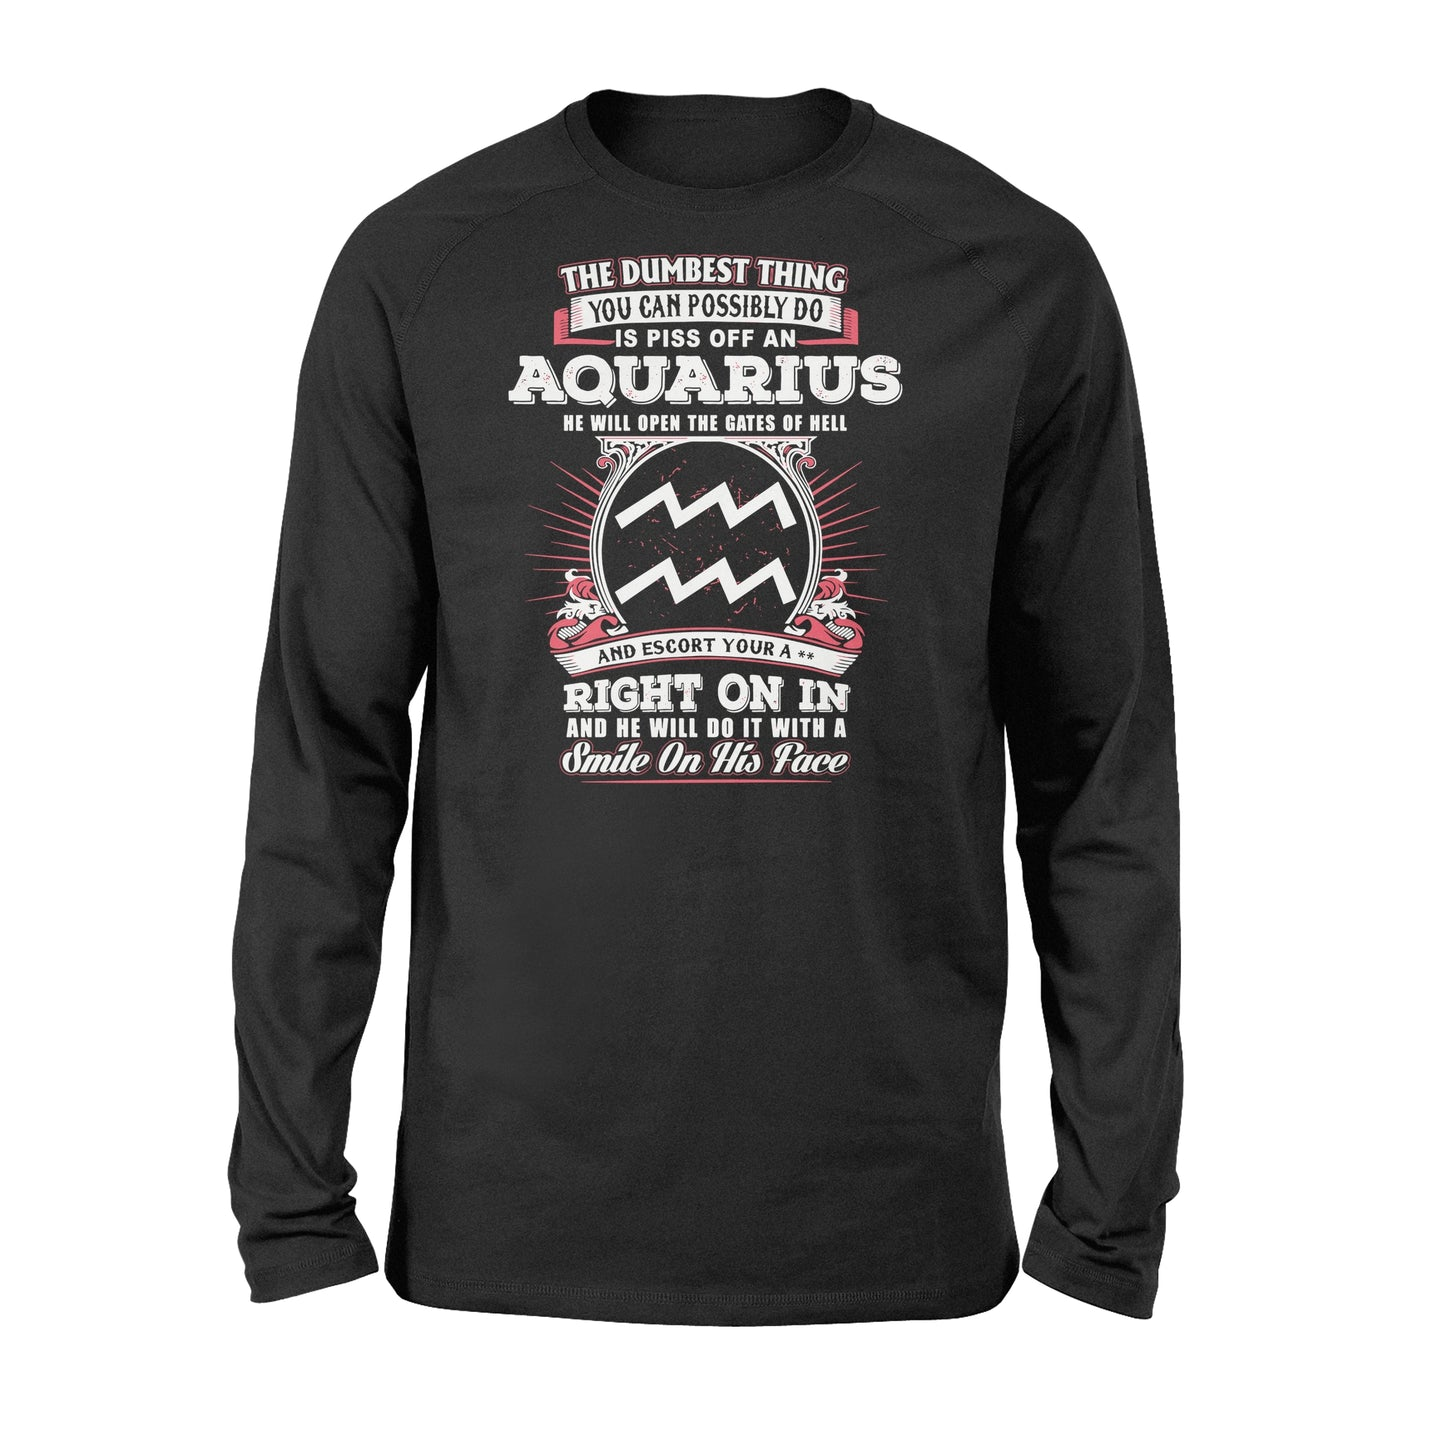 The Dumbest Thing You Can Possibly Do Is Piss Off An Aquarius Birthday - Standard Long Sleeve Apparel S / Black